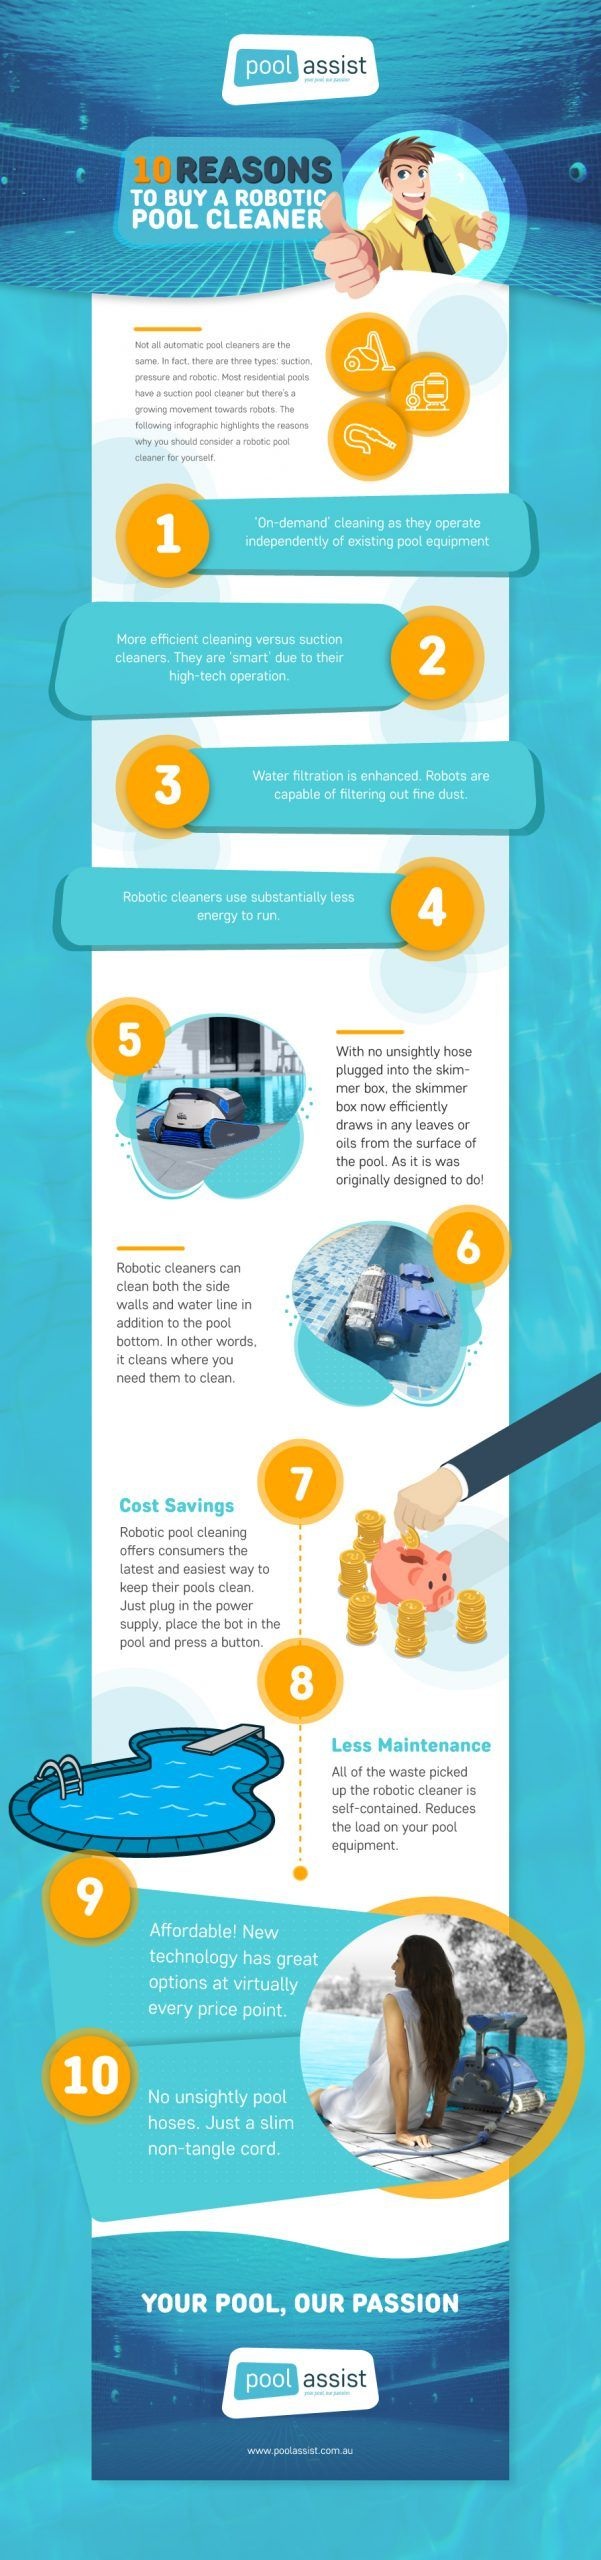 10 Reasons to Buy a Robotic Pool Cleaner